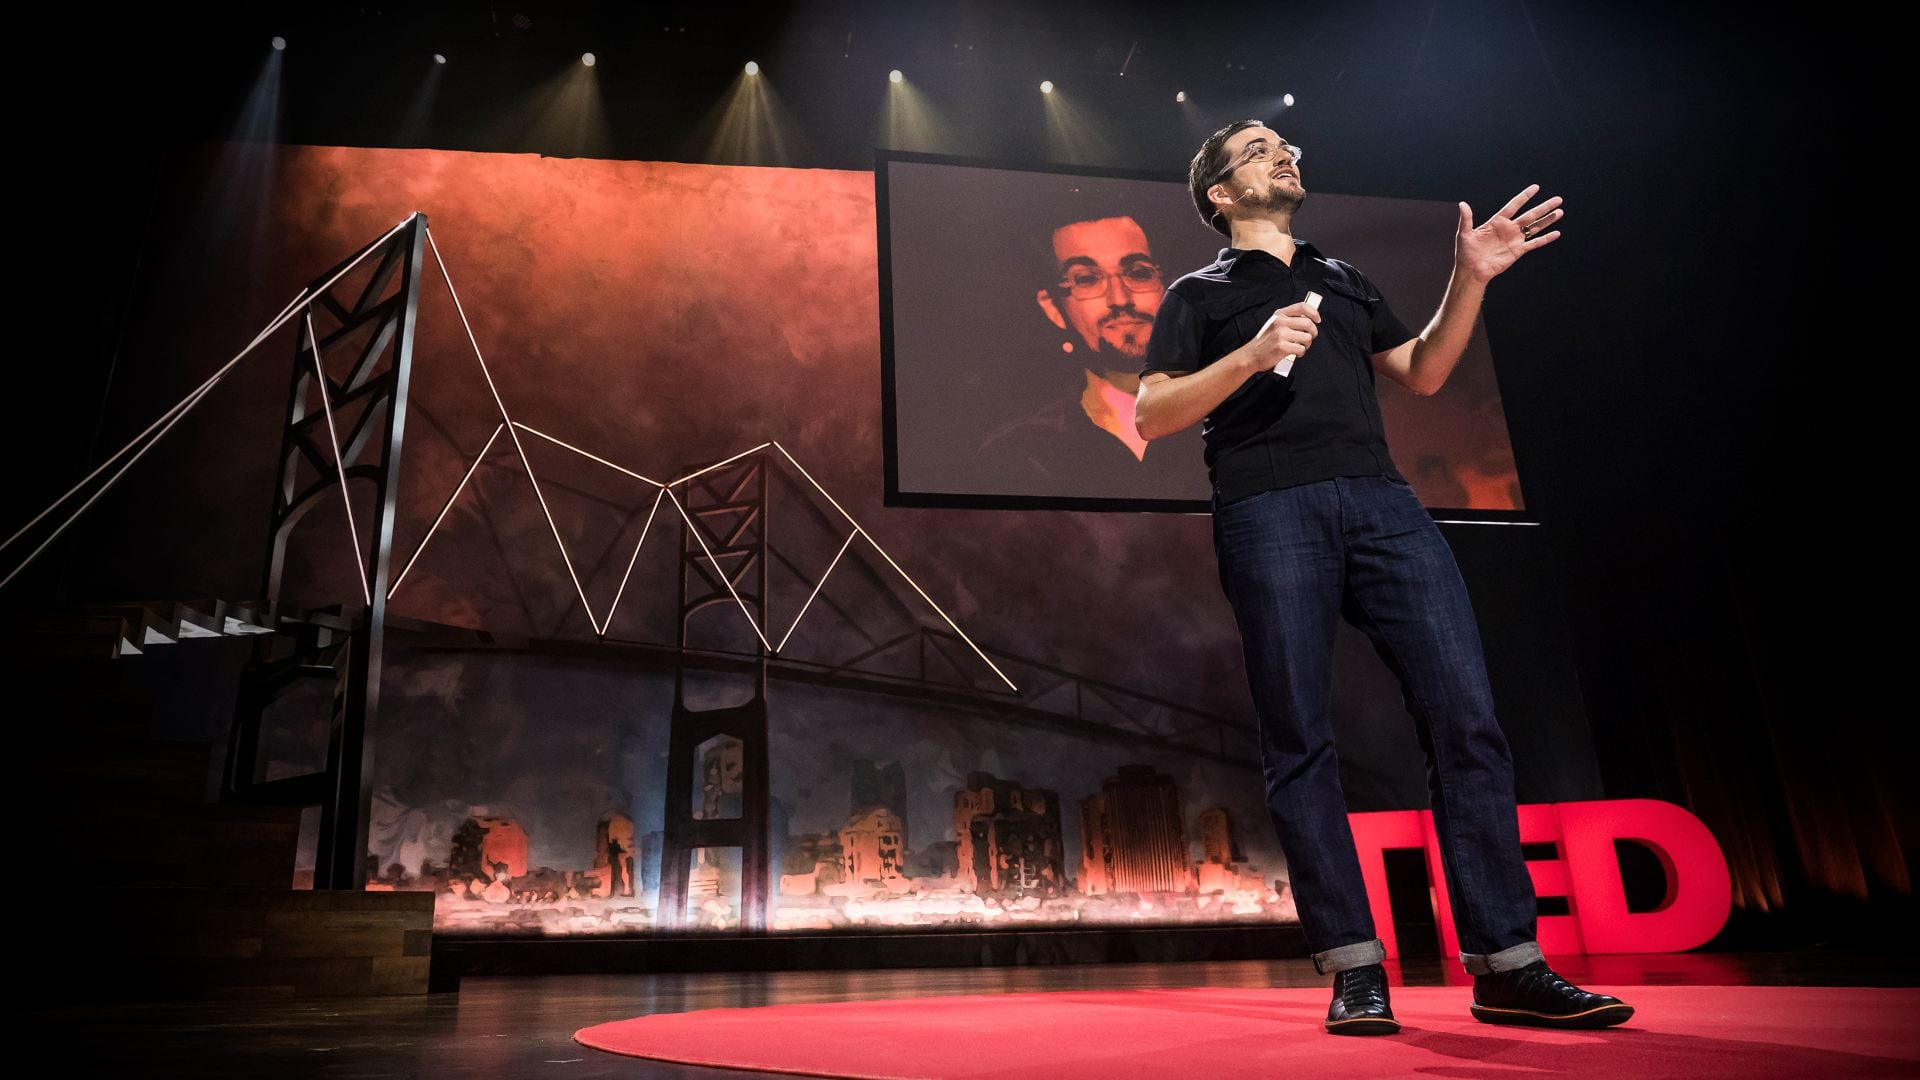 Assignment 24 – TED talks Reflection